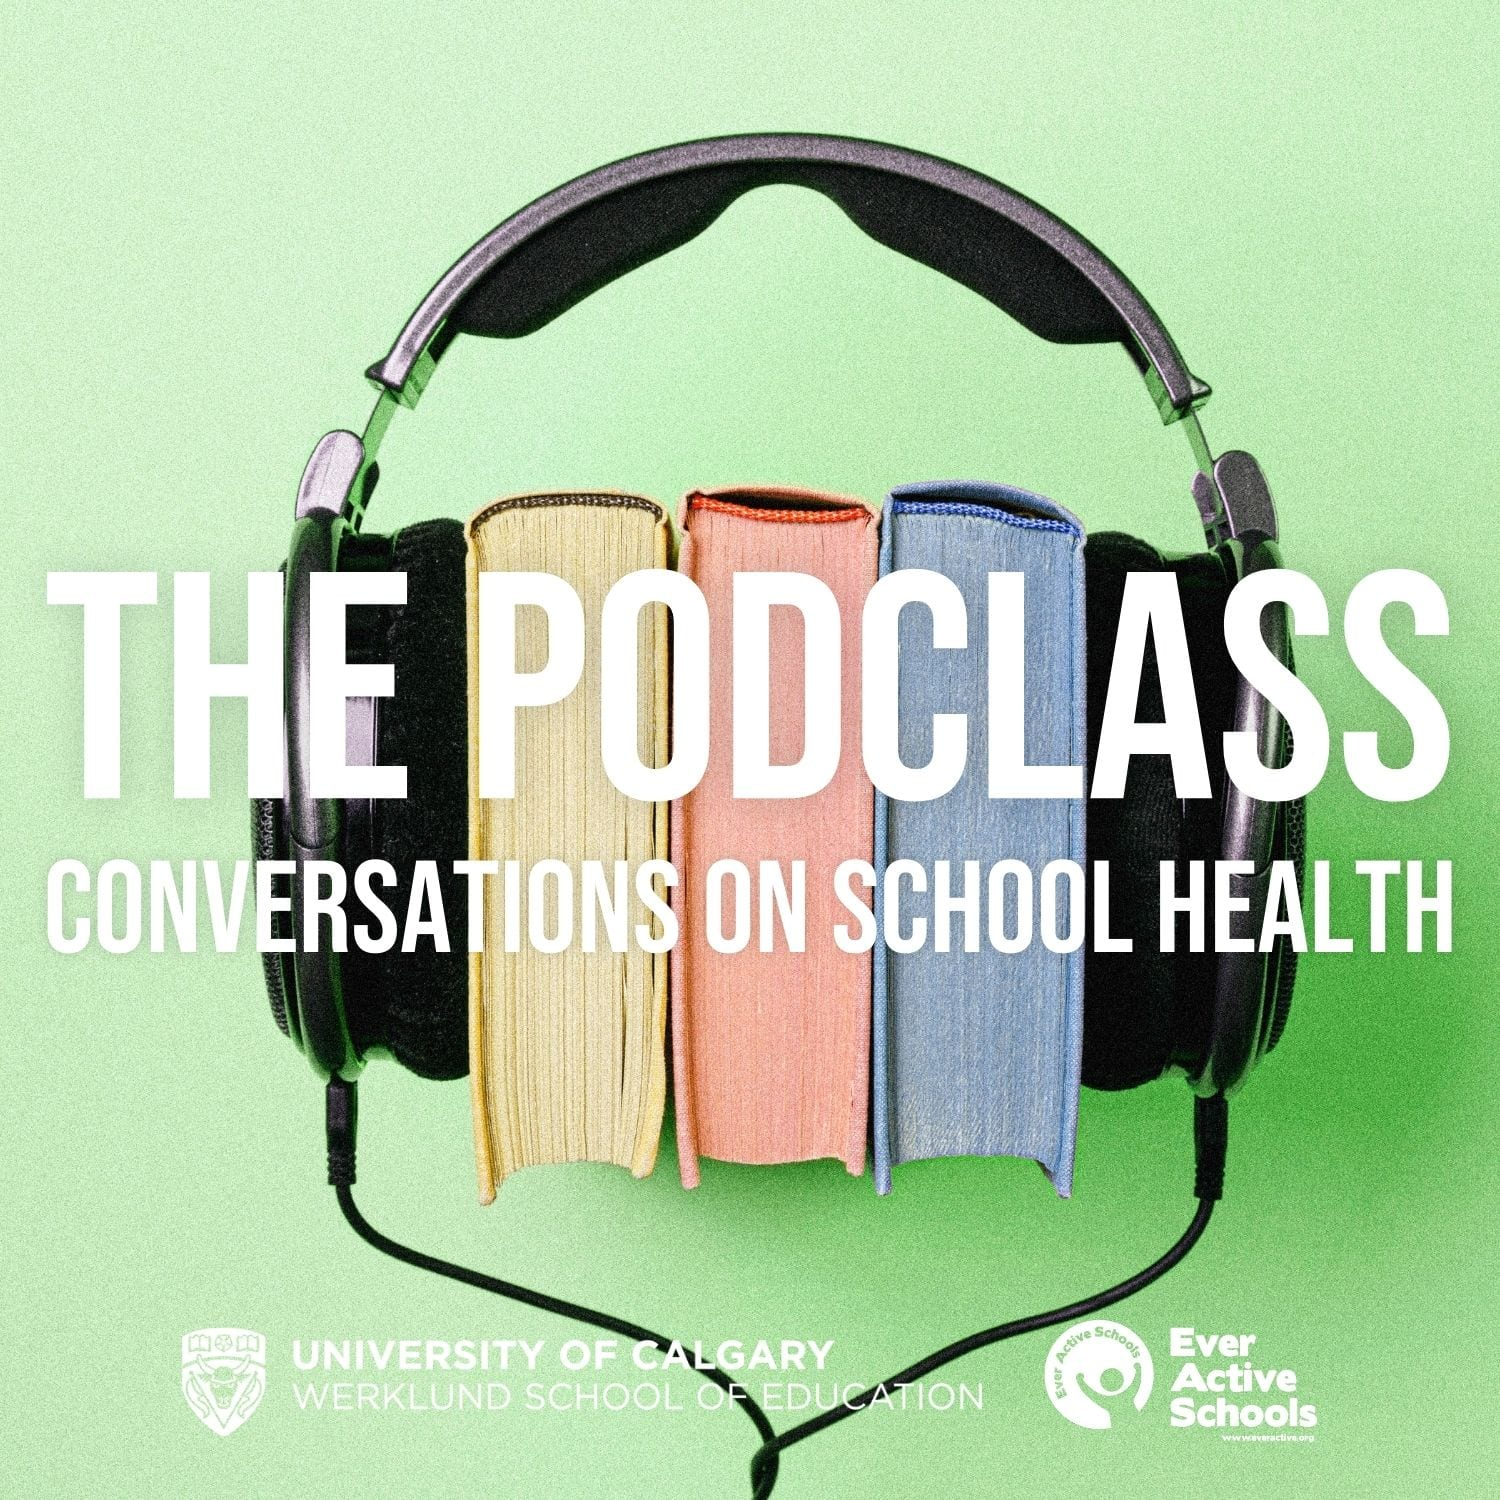 Three hardcover books between over ear headphones, with title The Podclass/Conversations on School Health